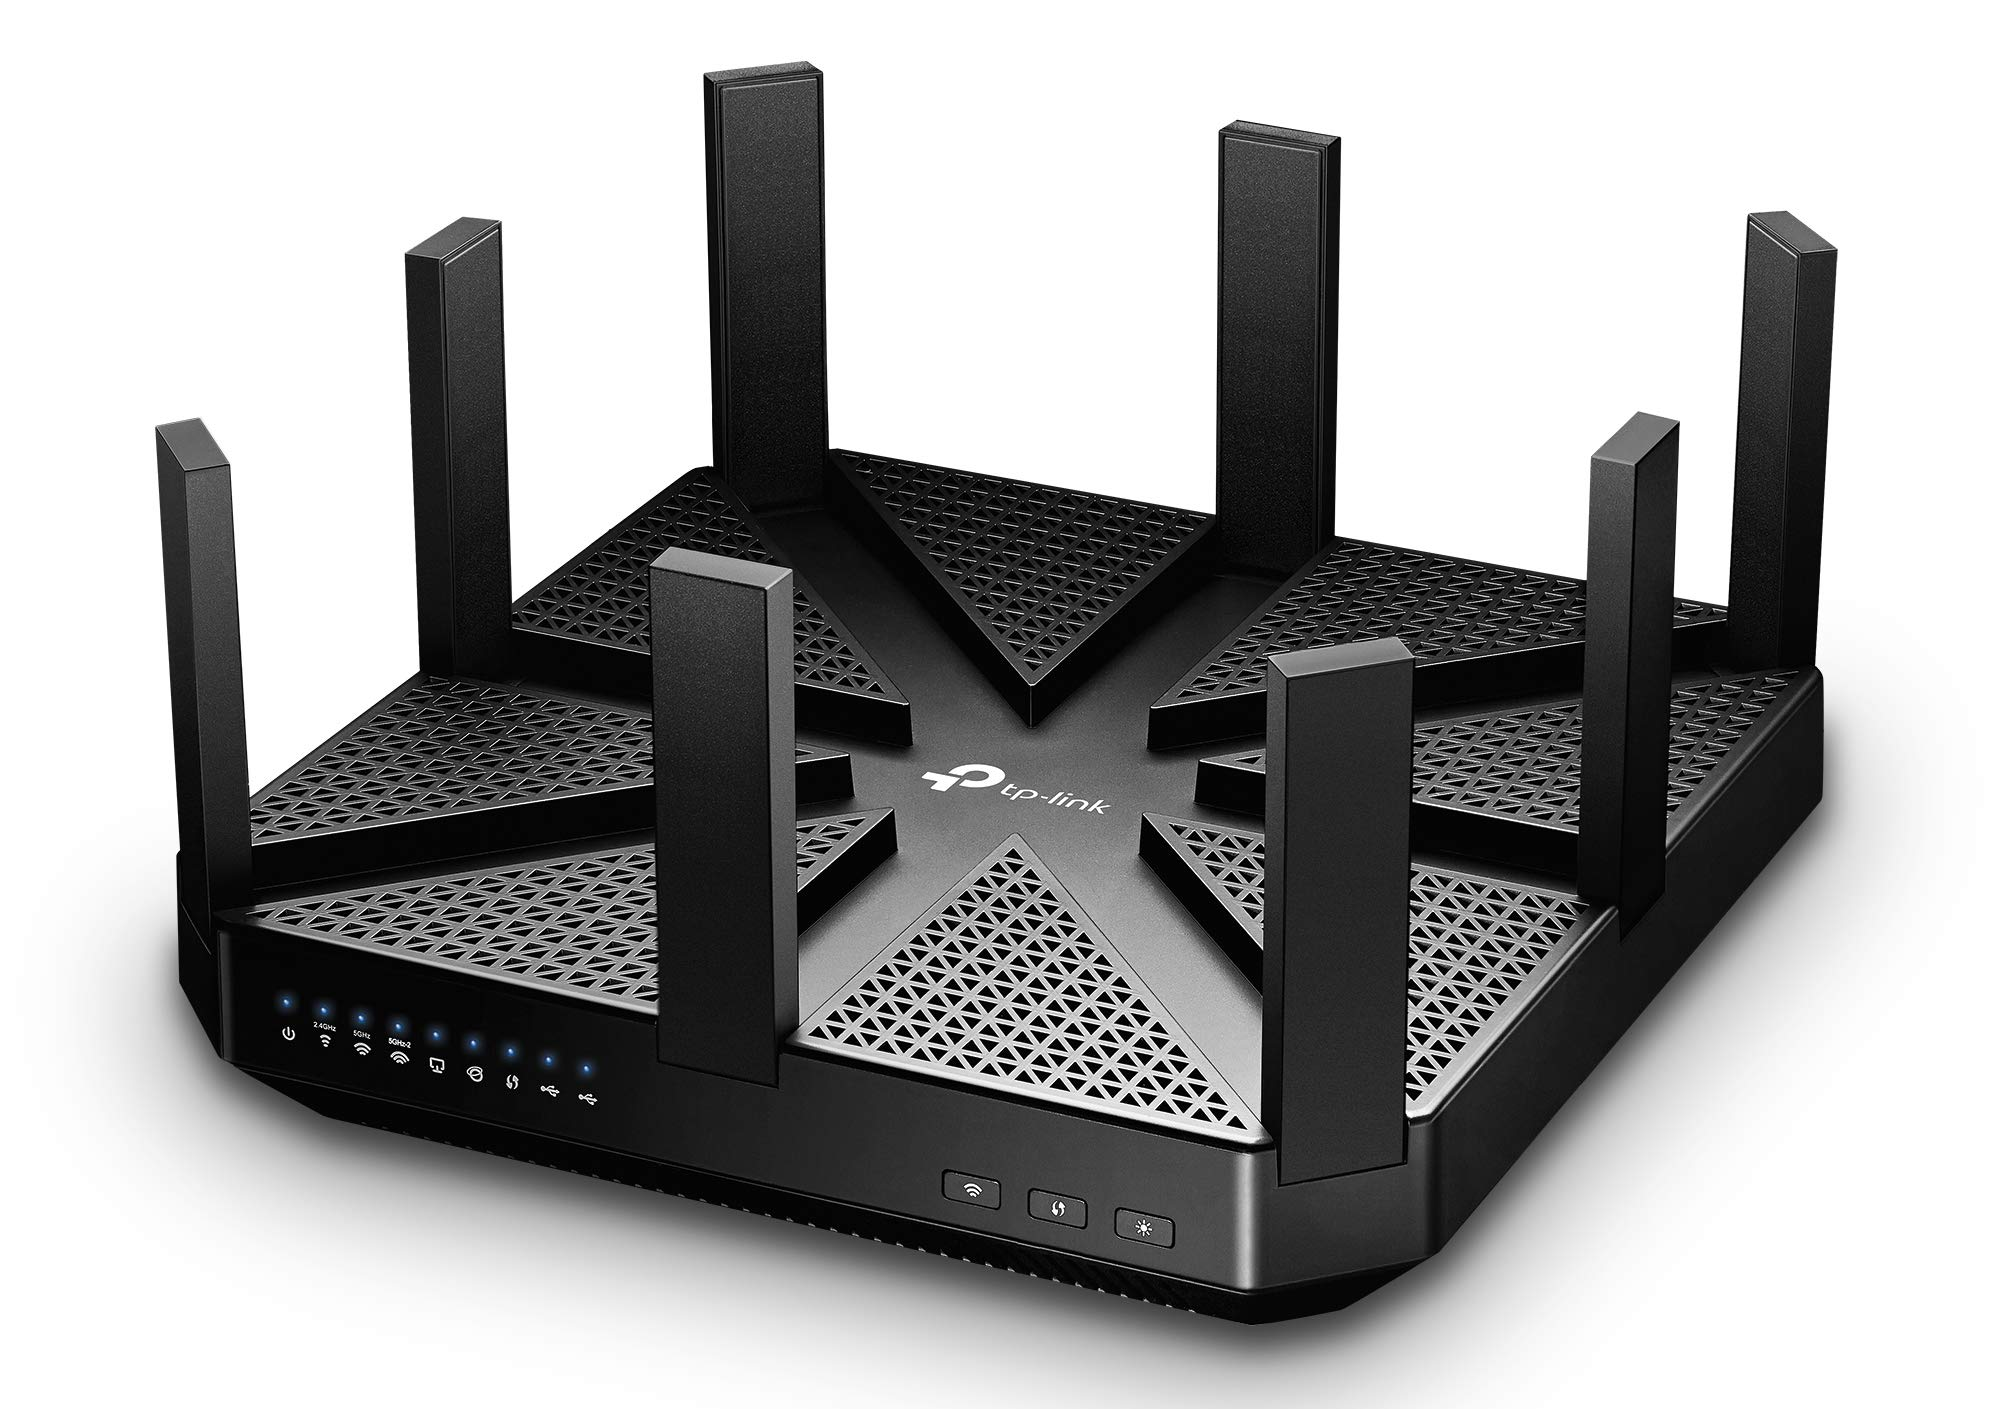 TP-Link AC5400 Tri Band Smart WiFi Gaming Router – MU-MIMO, Beamforming, Gigabit, Works with Alexa and IFTTT, Integrated Anti-Virus & QoS(Archer C5400) by TP-LINK (Image #8)